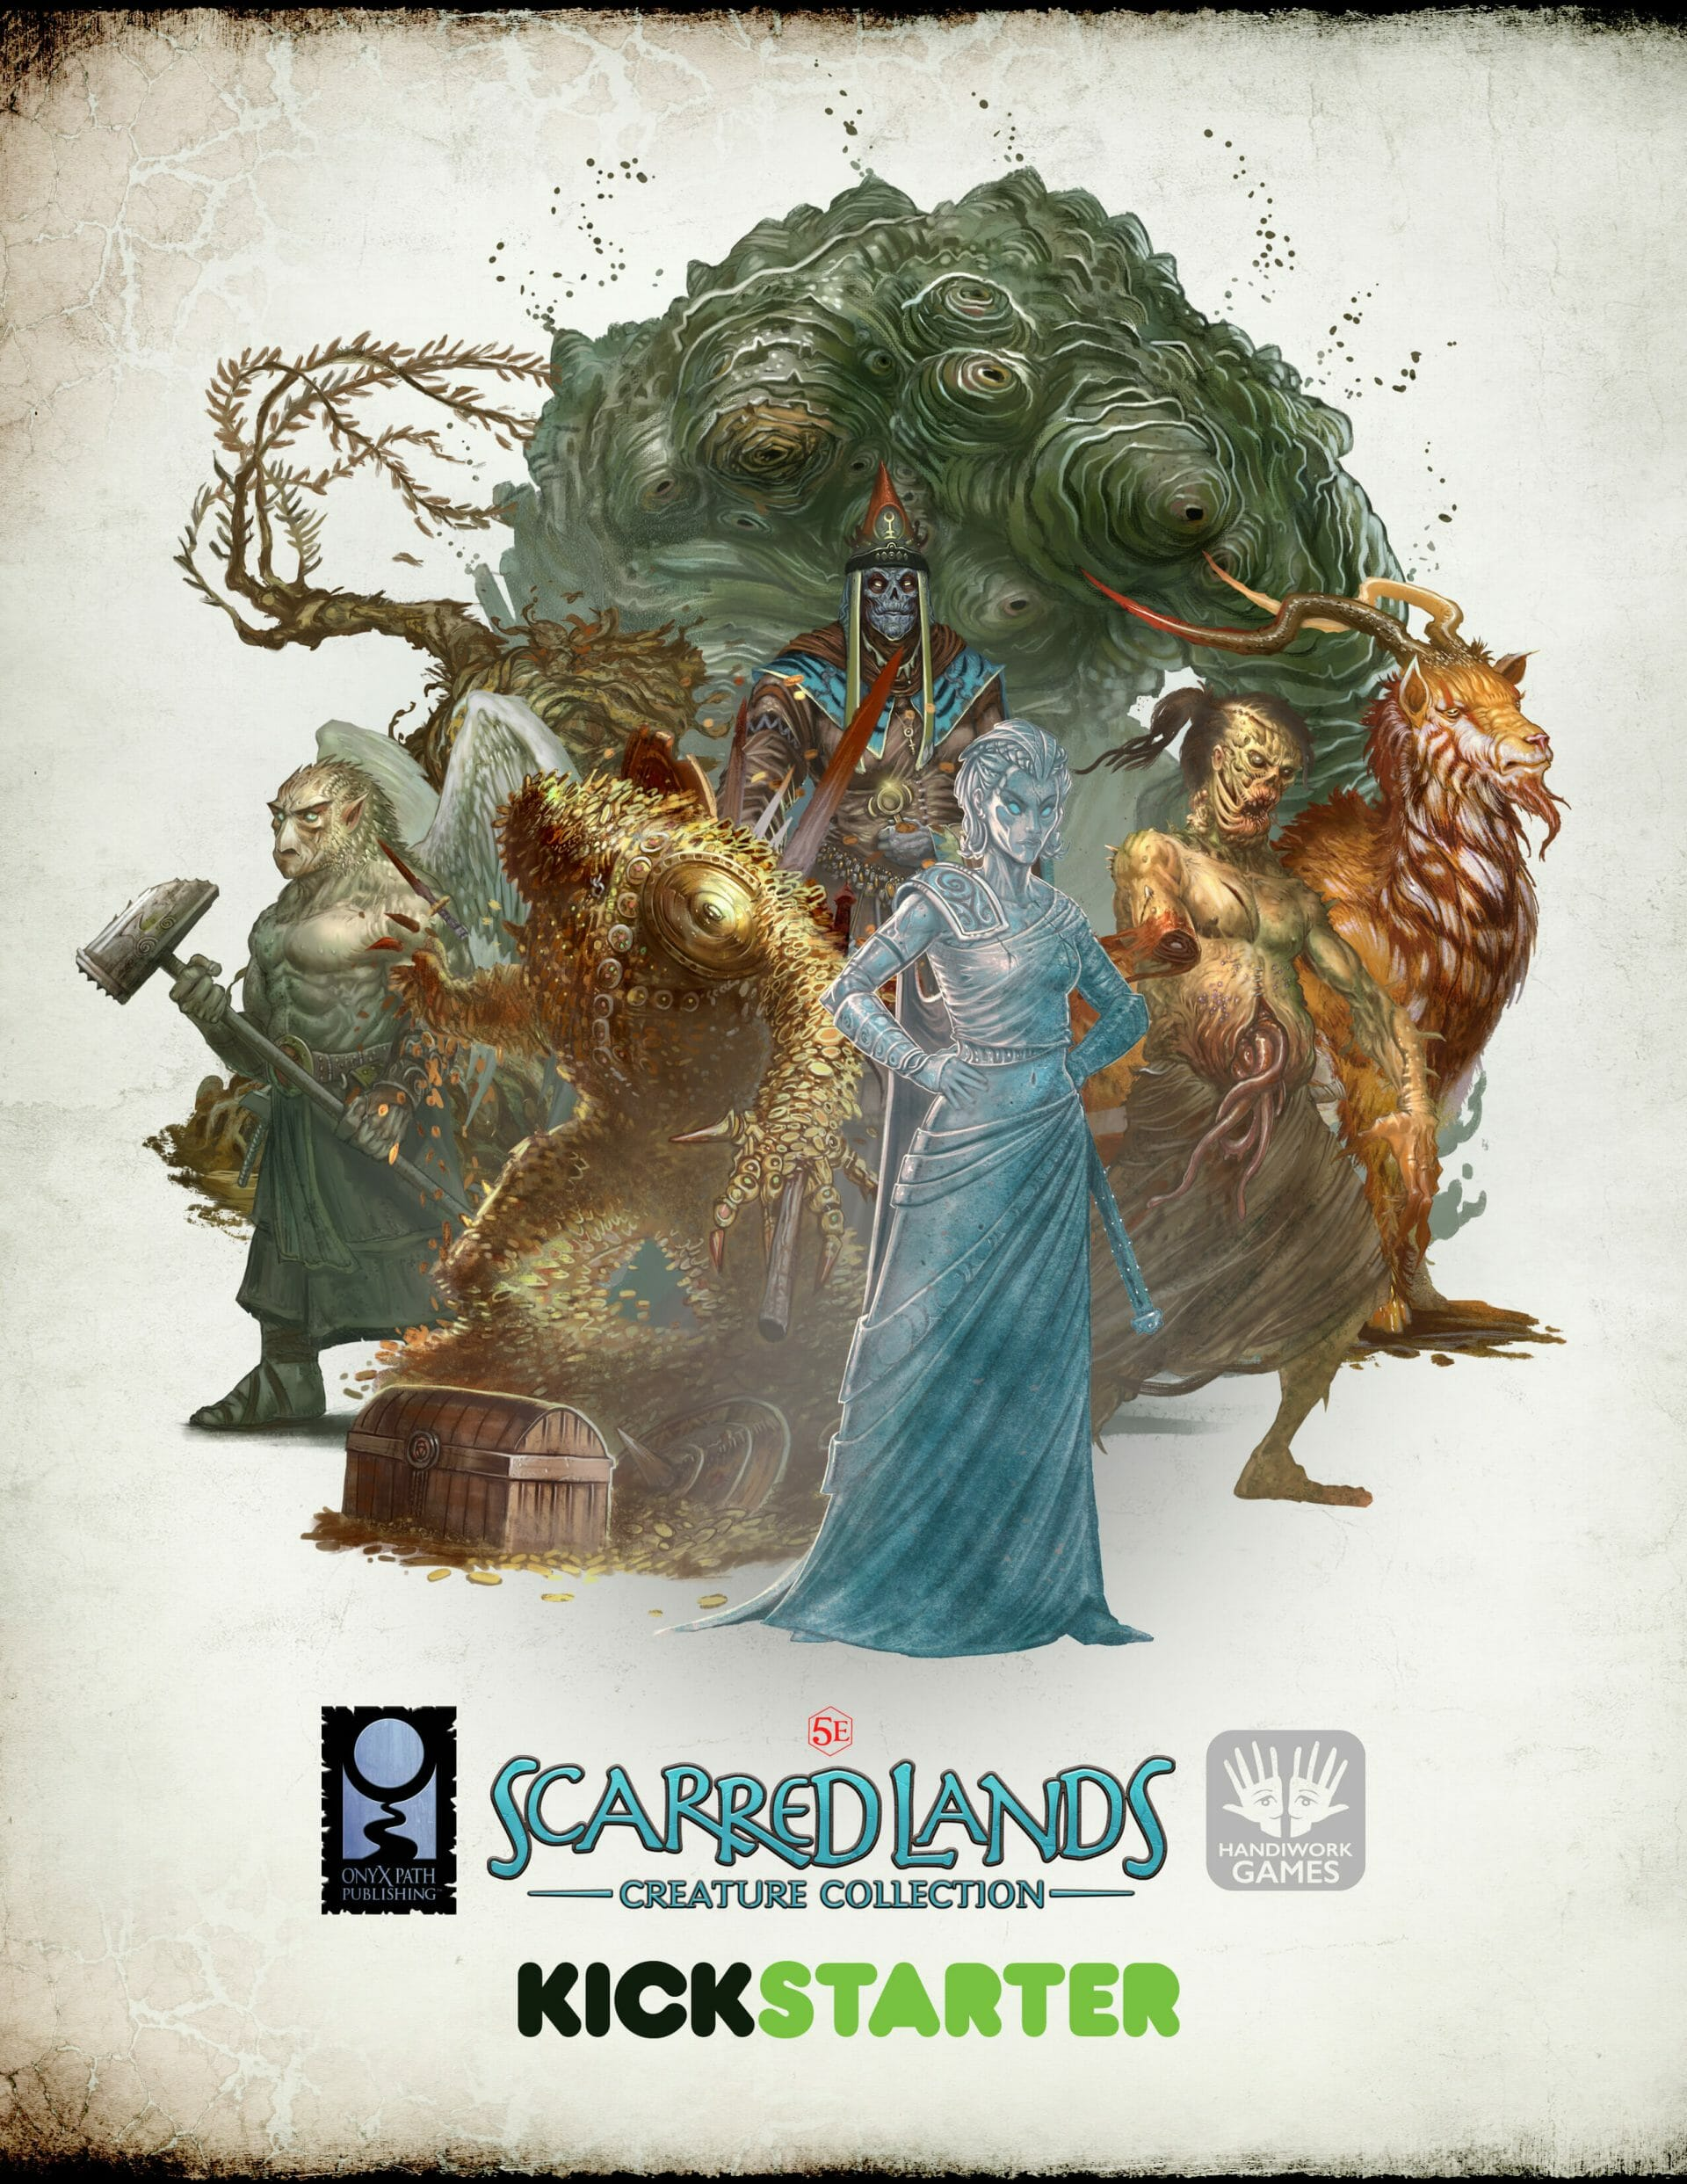 Scarred Lands Creature Collection